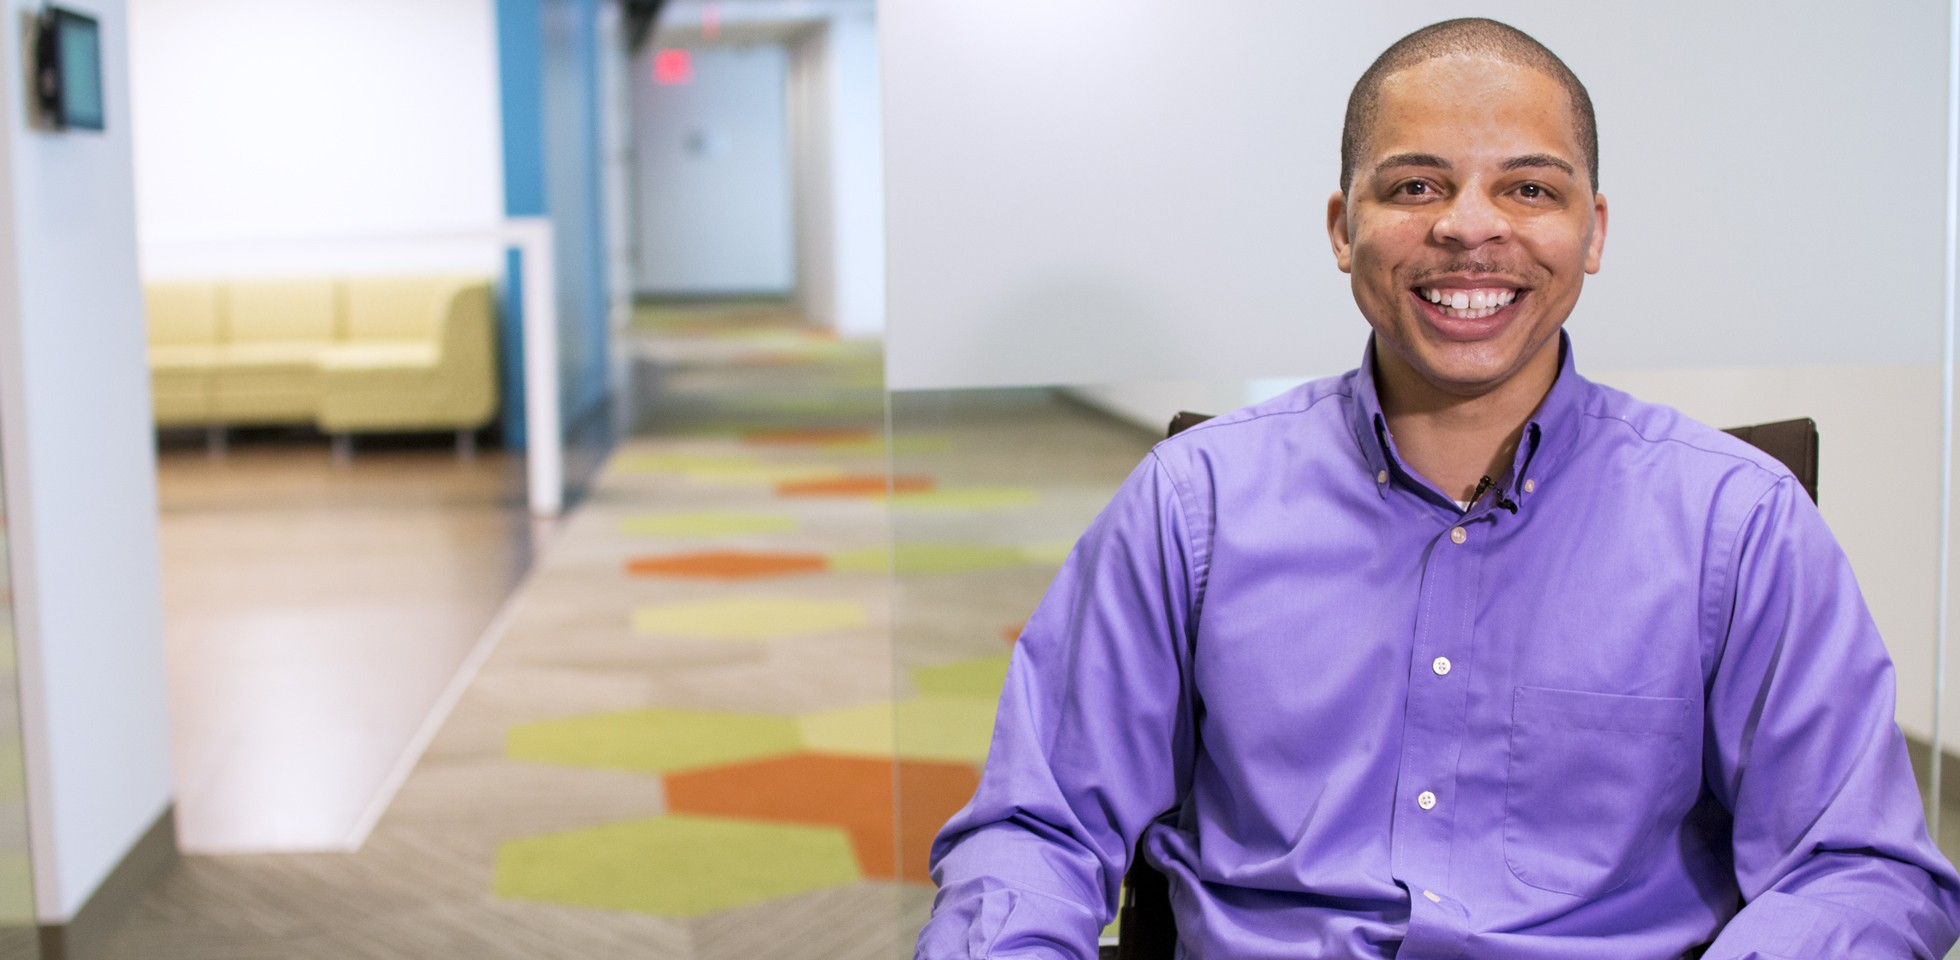 Michael Rochelle, Manager, Finance - PCORI Careers